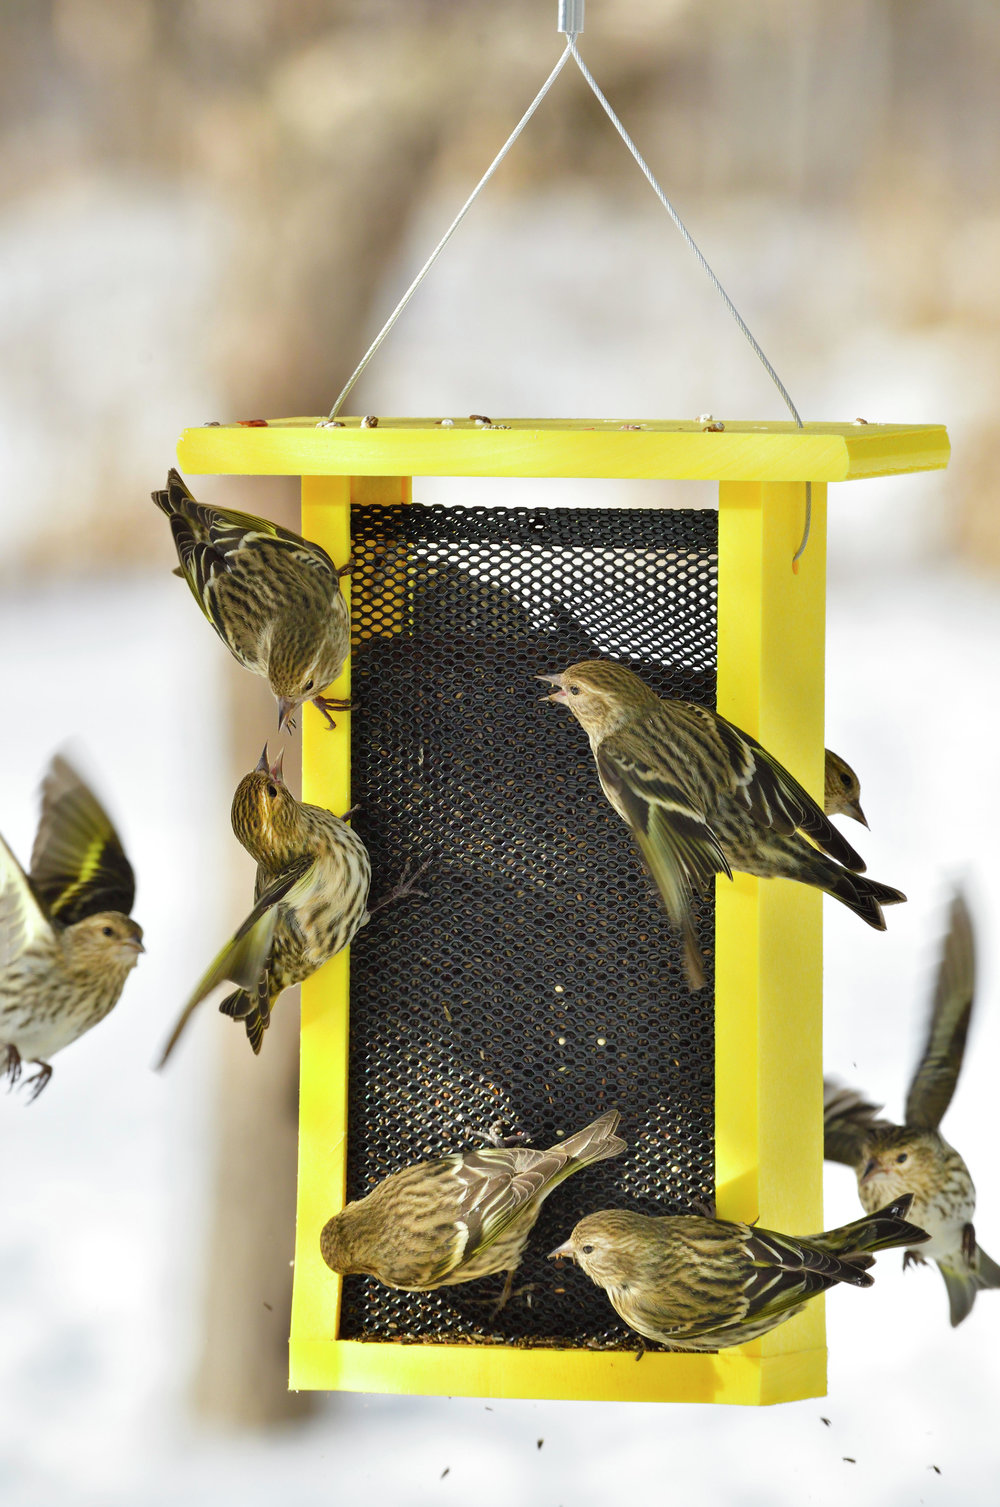 A group of hungry pine siskins gather food from a feeder designed especially for dispensing thistle seed. The feeder is also deer-proof. Siskins are especially common this winter.